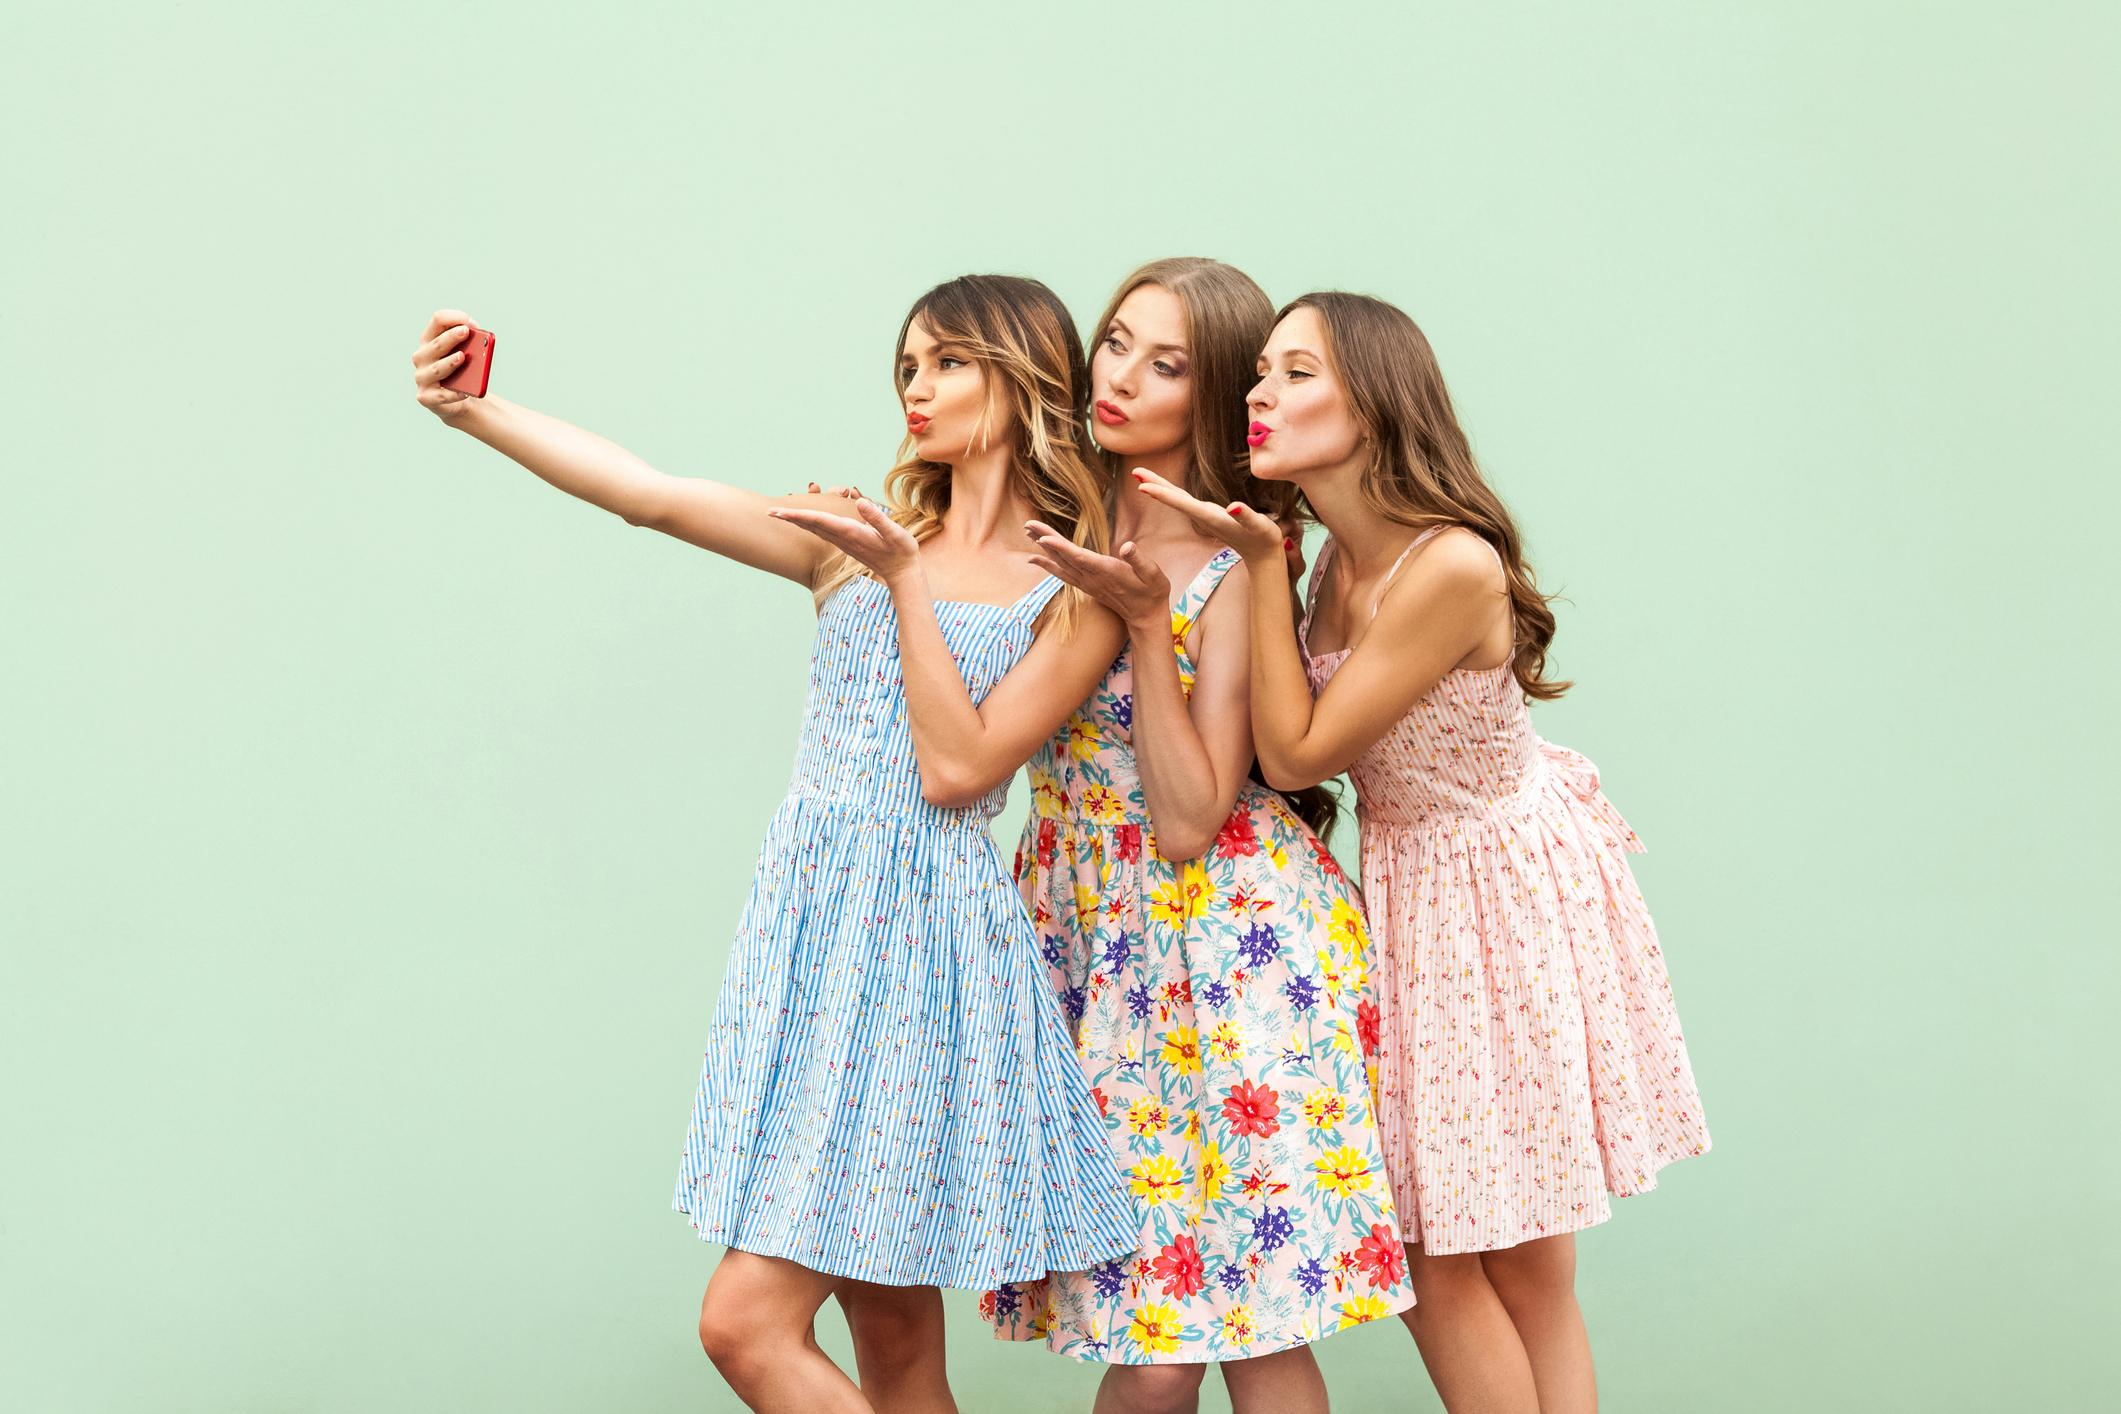 The point at which parents should worry about teen girls selfie-taking